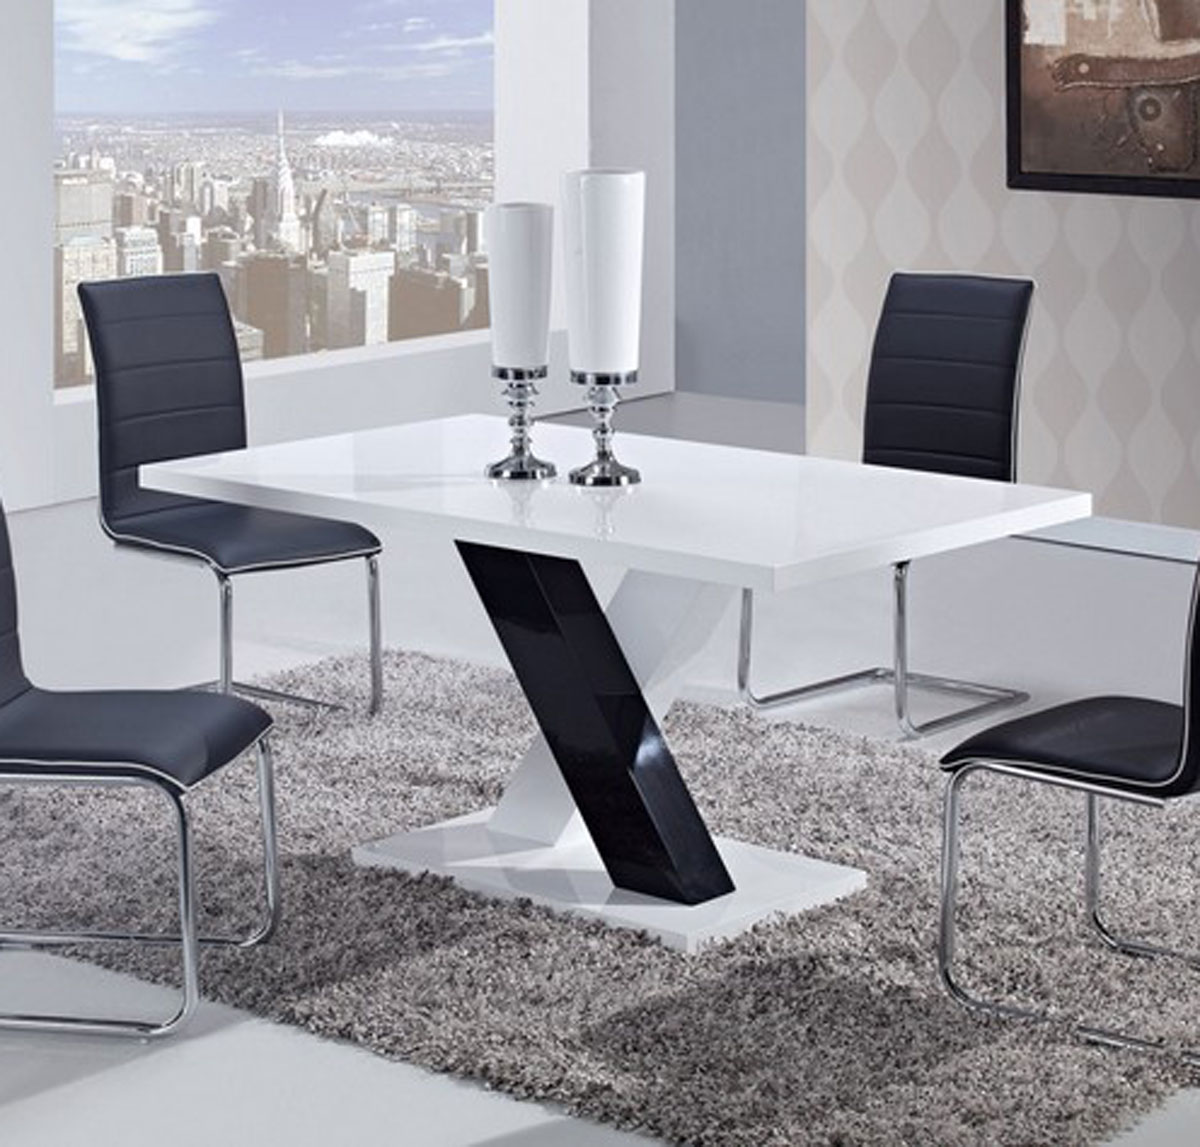 Global Furniture Usa 490 Dining Table White High Gloss Mdf Black And White Legs Gf D490dt At Homelement Com